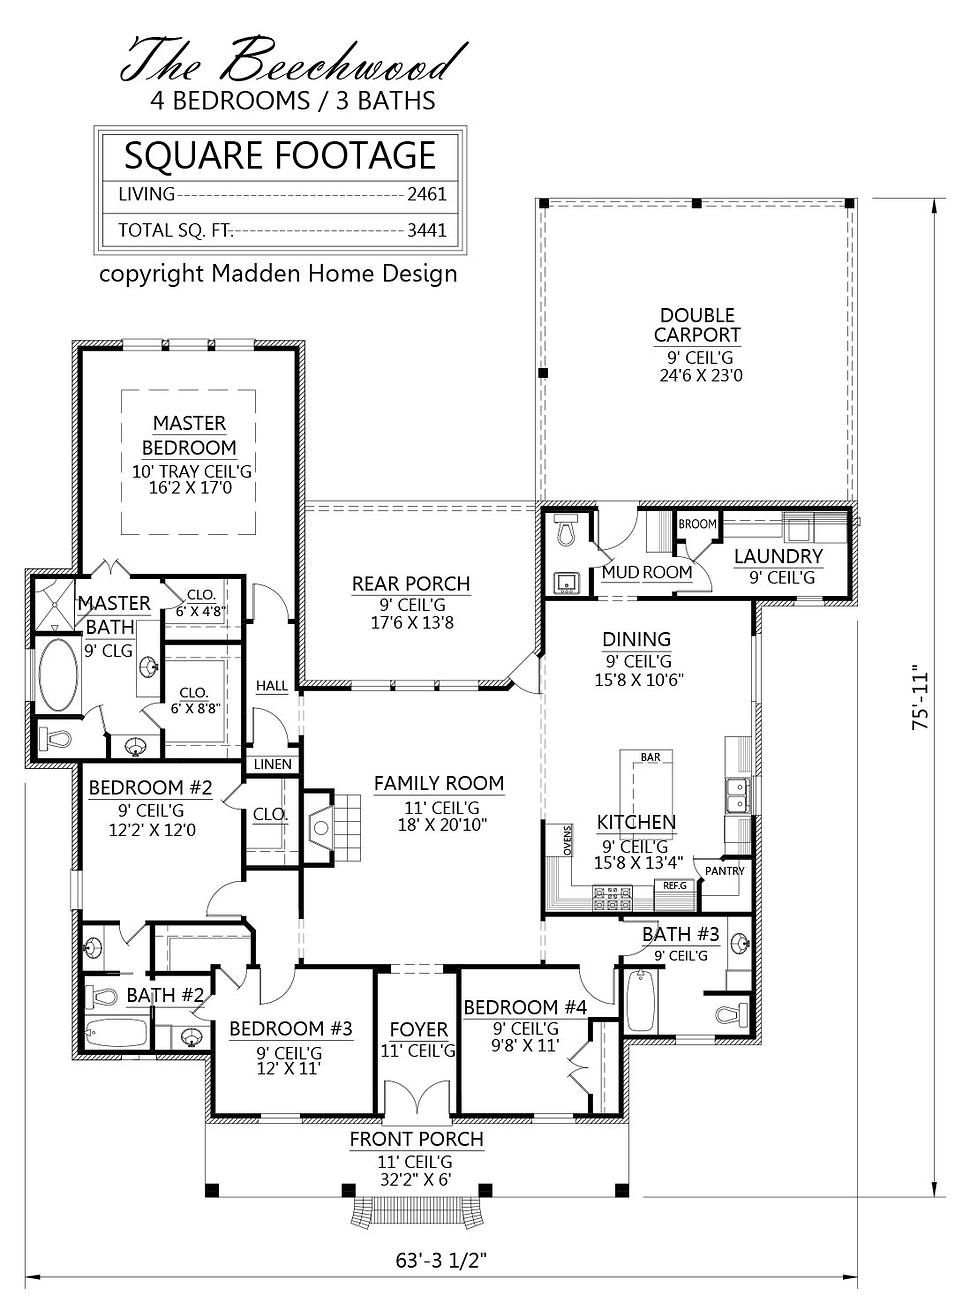 Madden home design the greywood house plans for Madden house plans